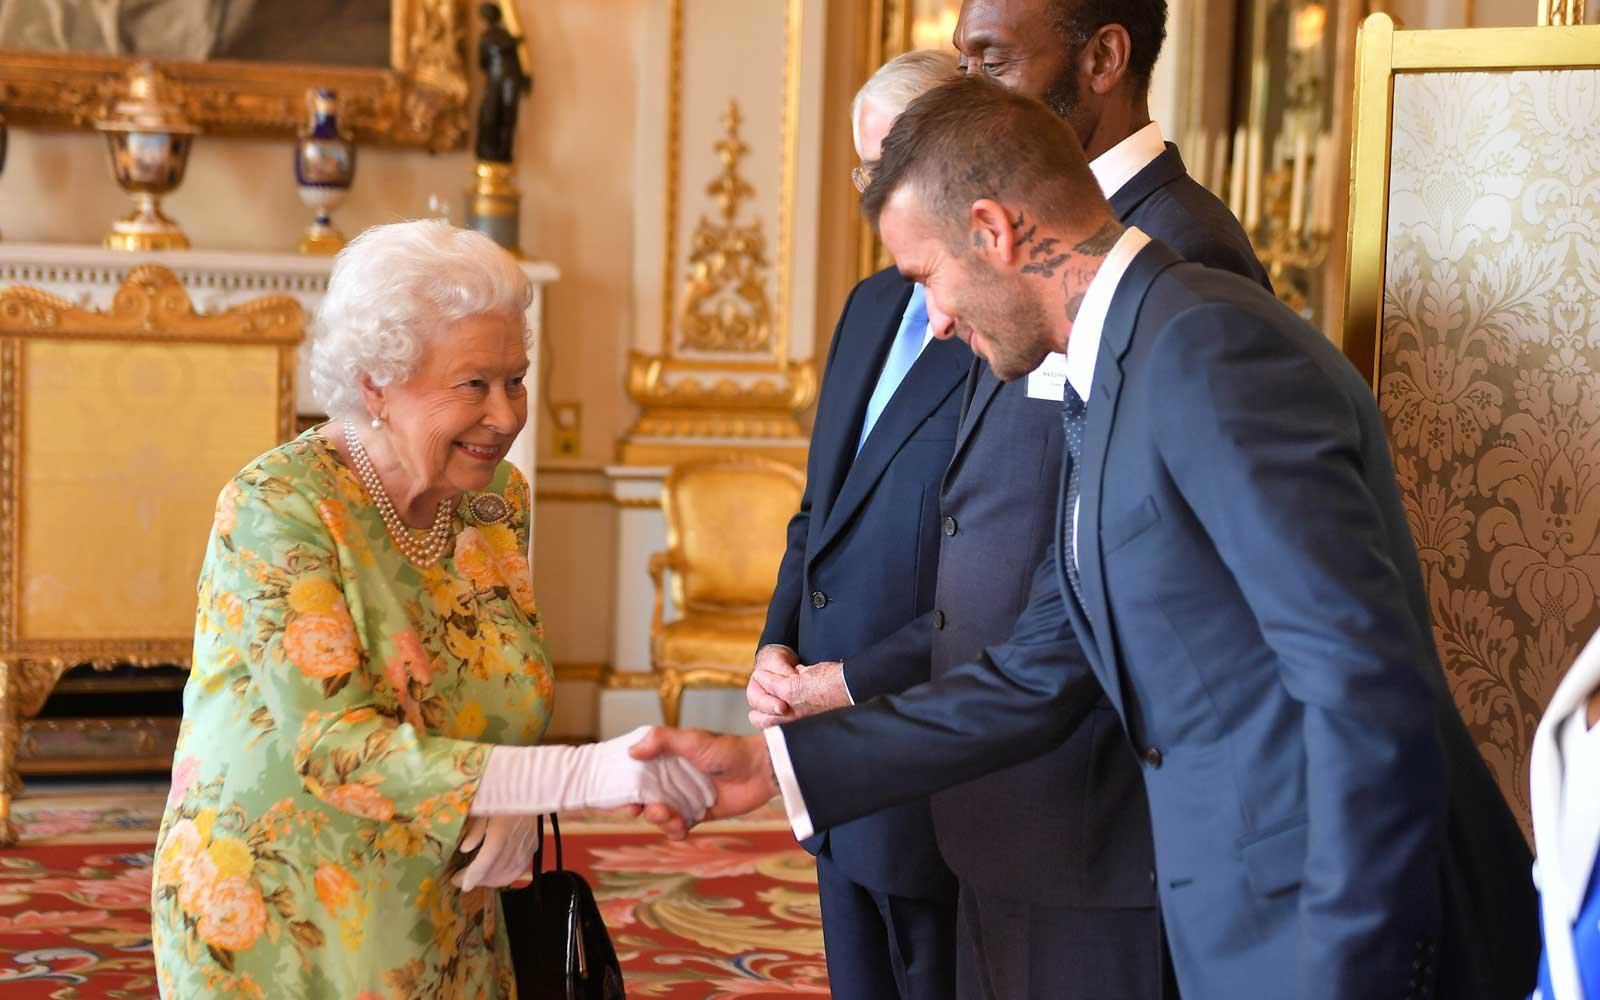 The Queen Quietly Gushing Over David Beckham Is The Video You Need